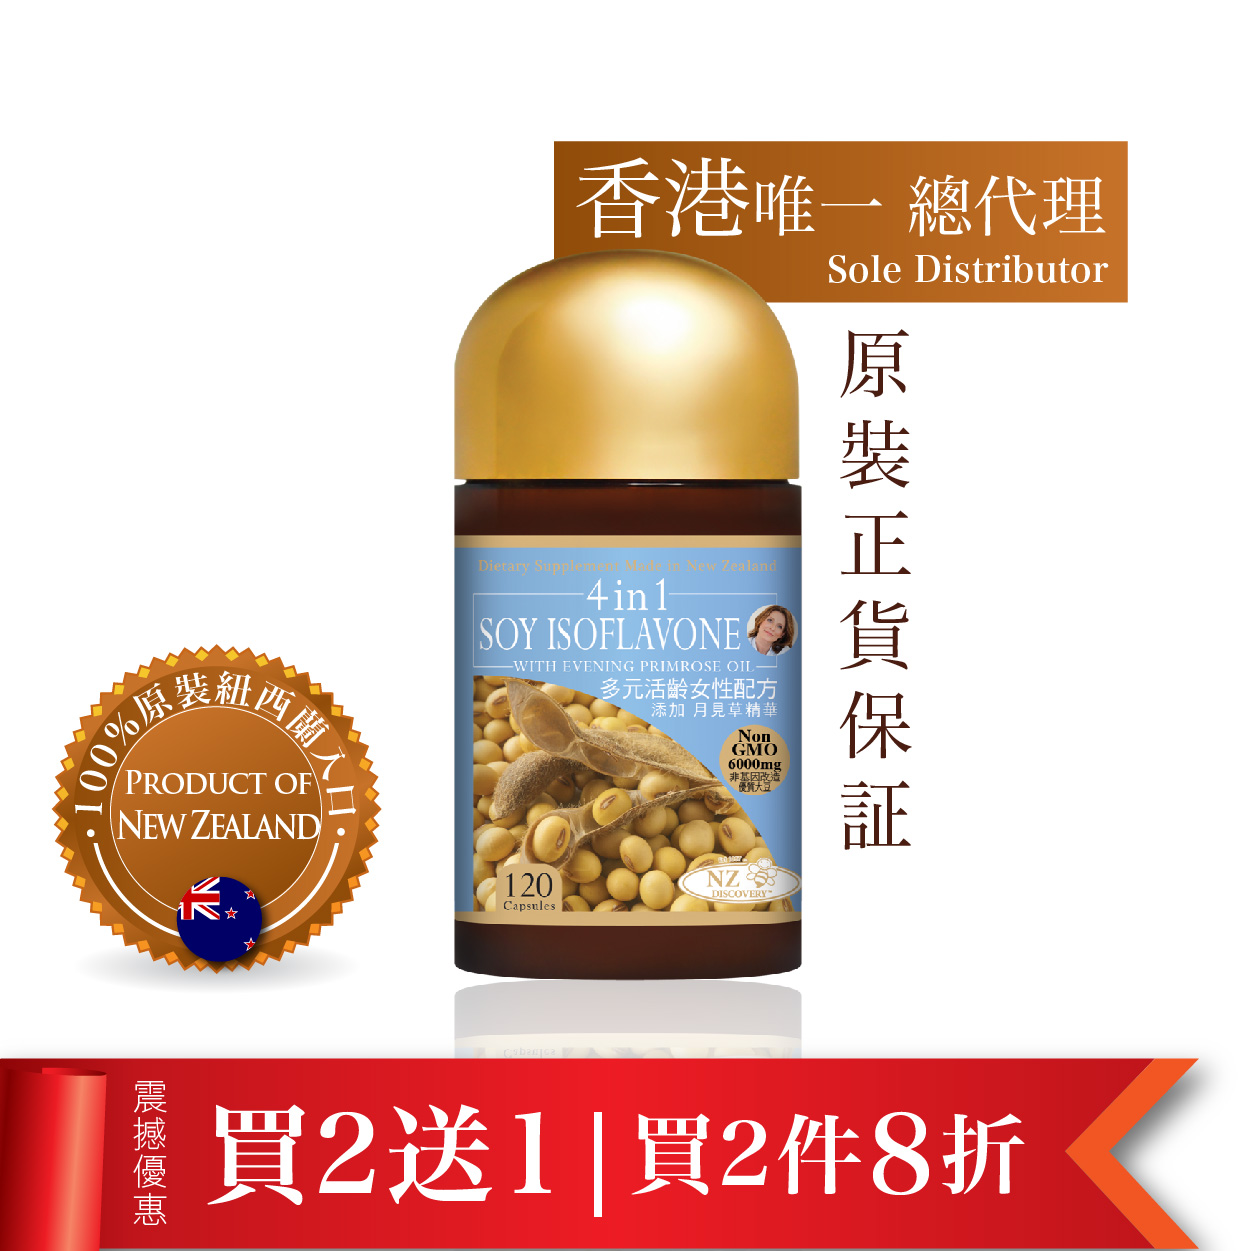 NZ Discovery 4 in 1 Soy Isoflavone with Evening Primrose Oil